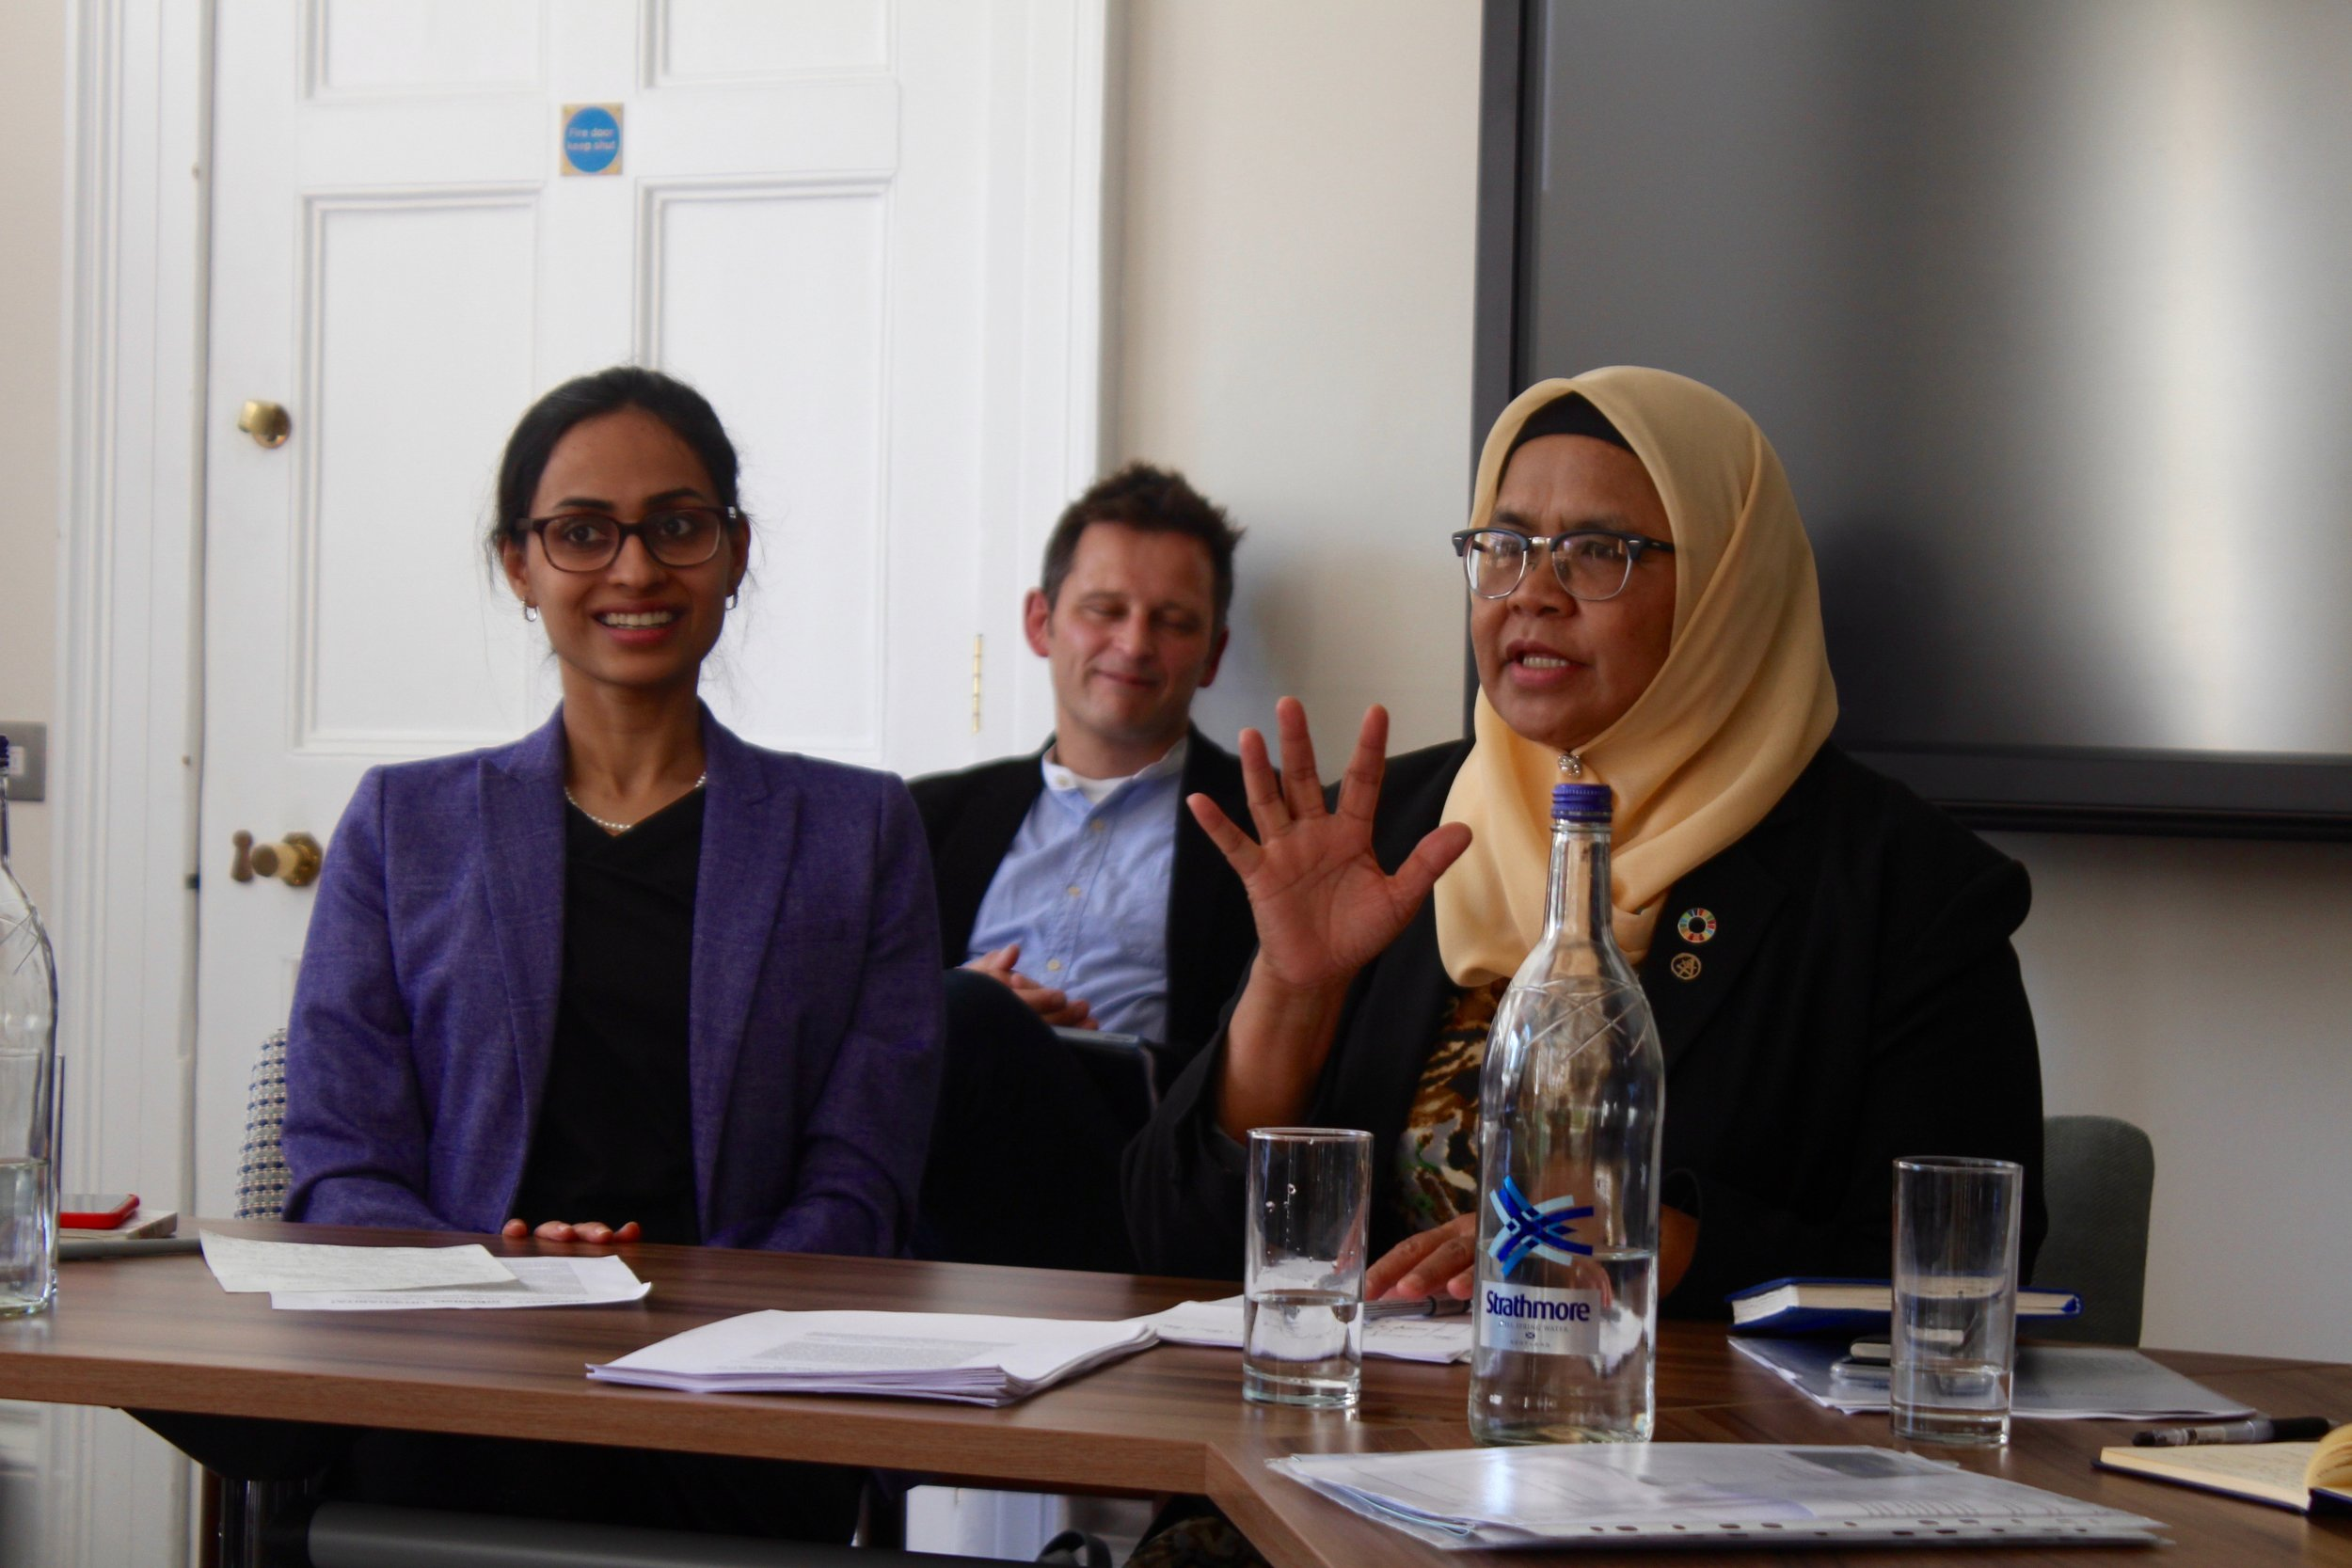 UN-Habitat Executive Director Maimunah Mohd Sharif, right, outlined findings from her initial meetings with city leaders from around the world. Dr. Radhika Khosla (left), Research Director of the Oxford India Centre for Sustainable Development, moderated the roundtable.